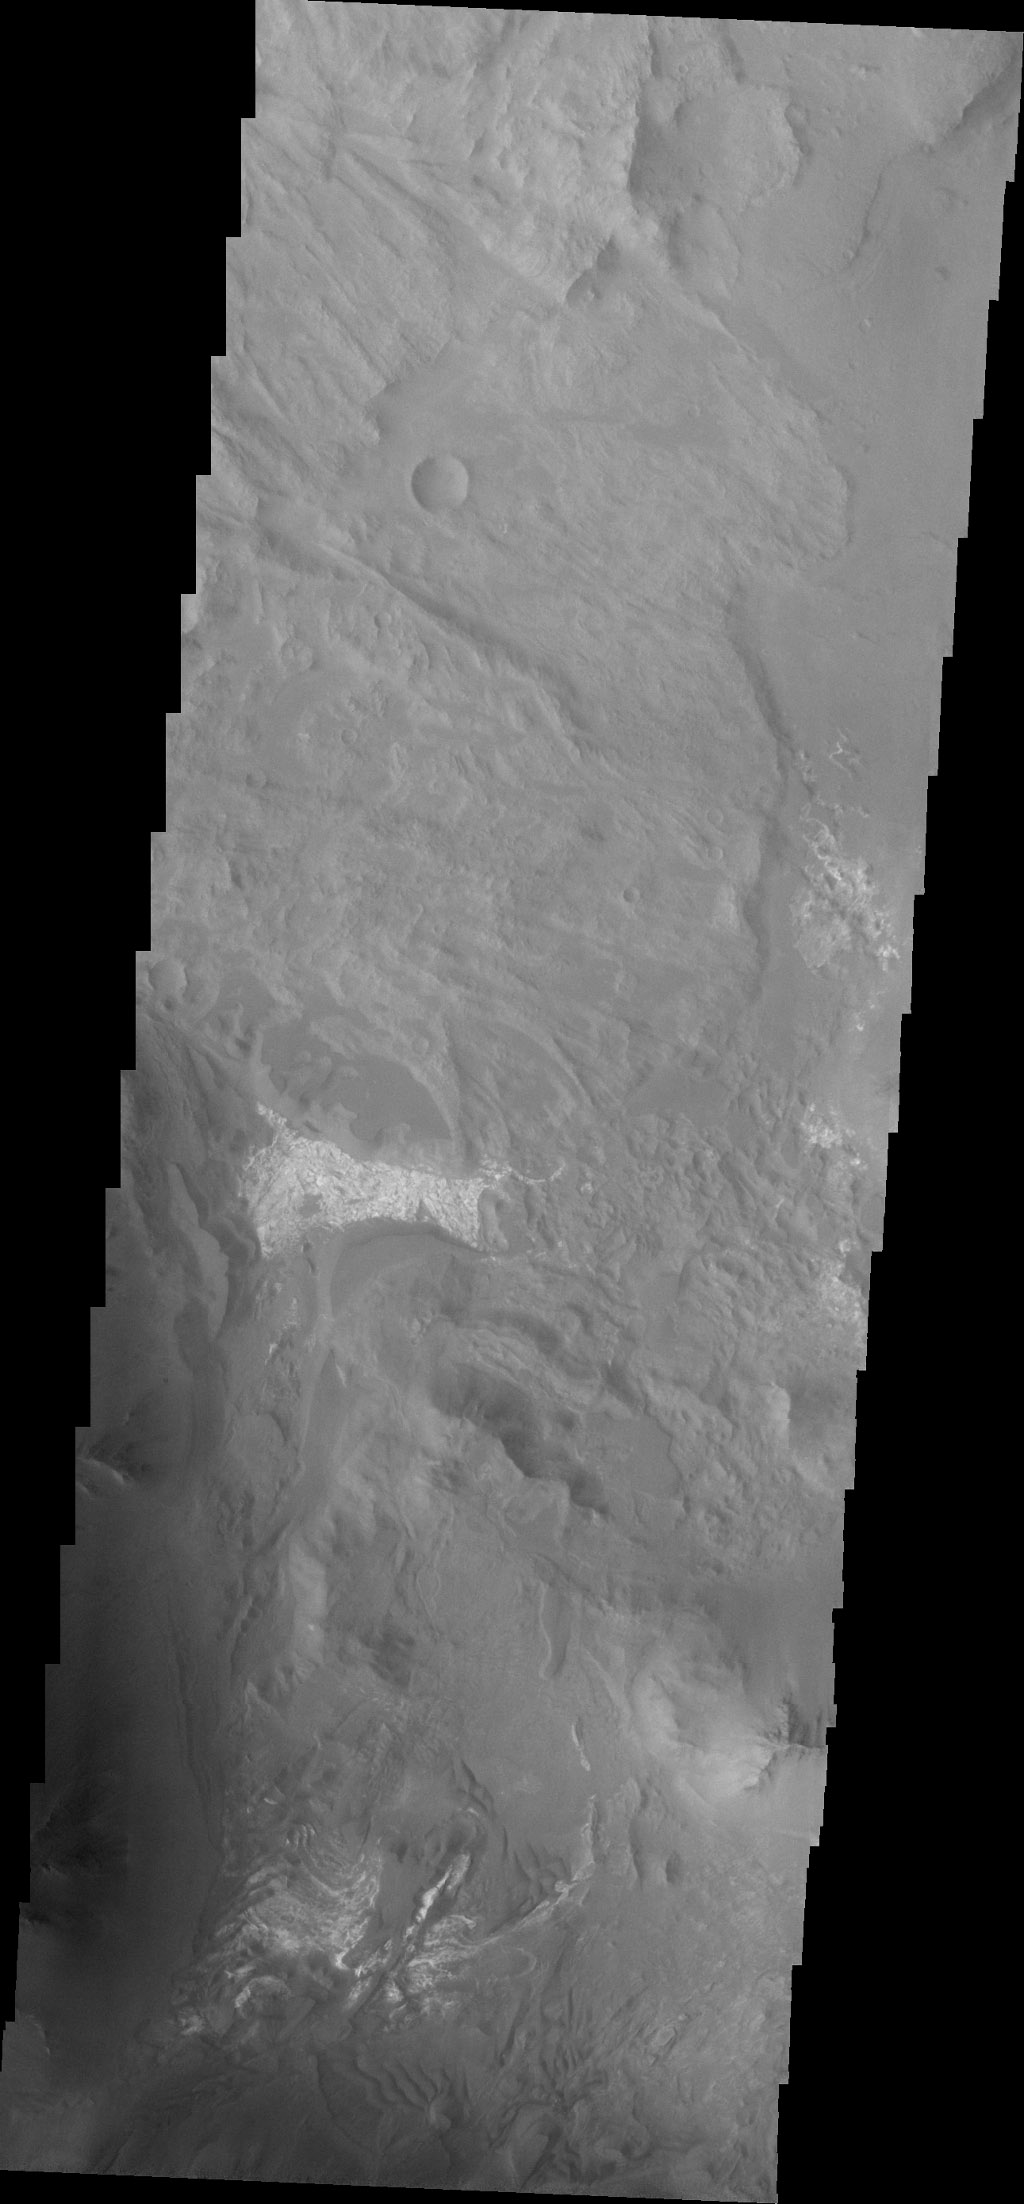 Coprates Chasma is one of the numerous canyons that make up Valles Marineris. This image captured by NASA's 2001 Mars Odyssey spacecraft is located in eastern Coprates Chasma.